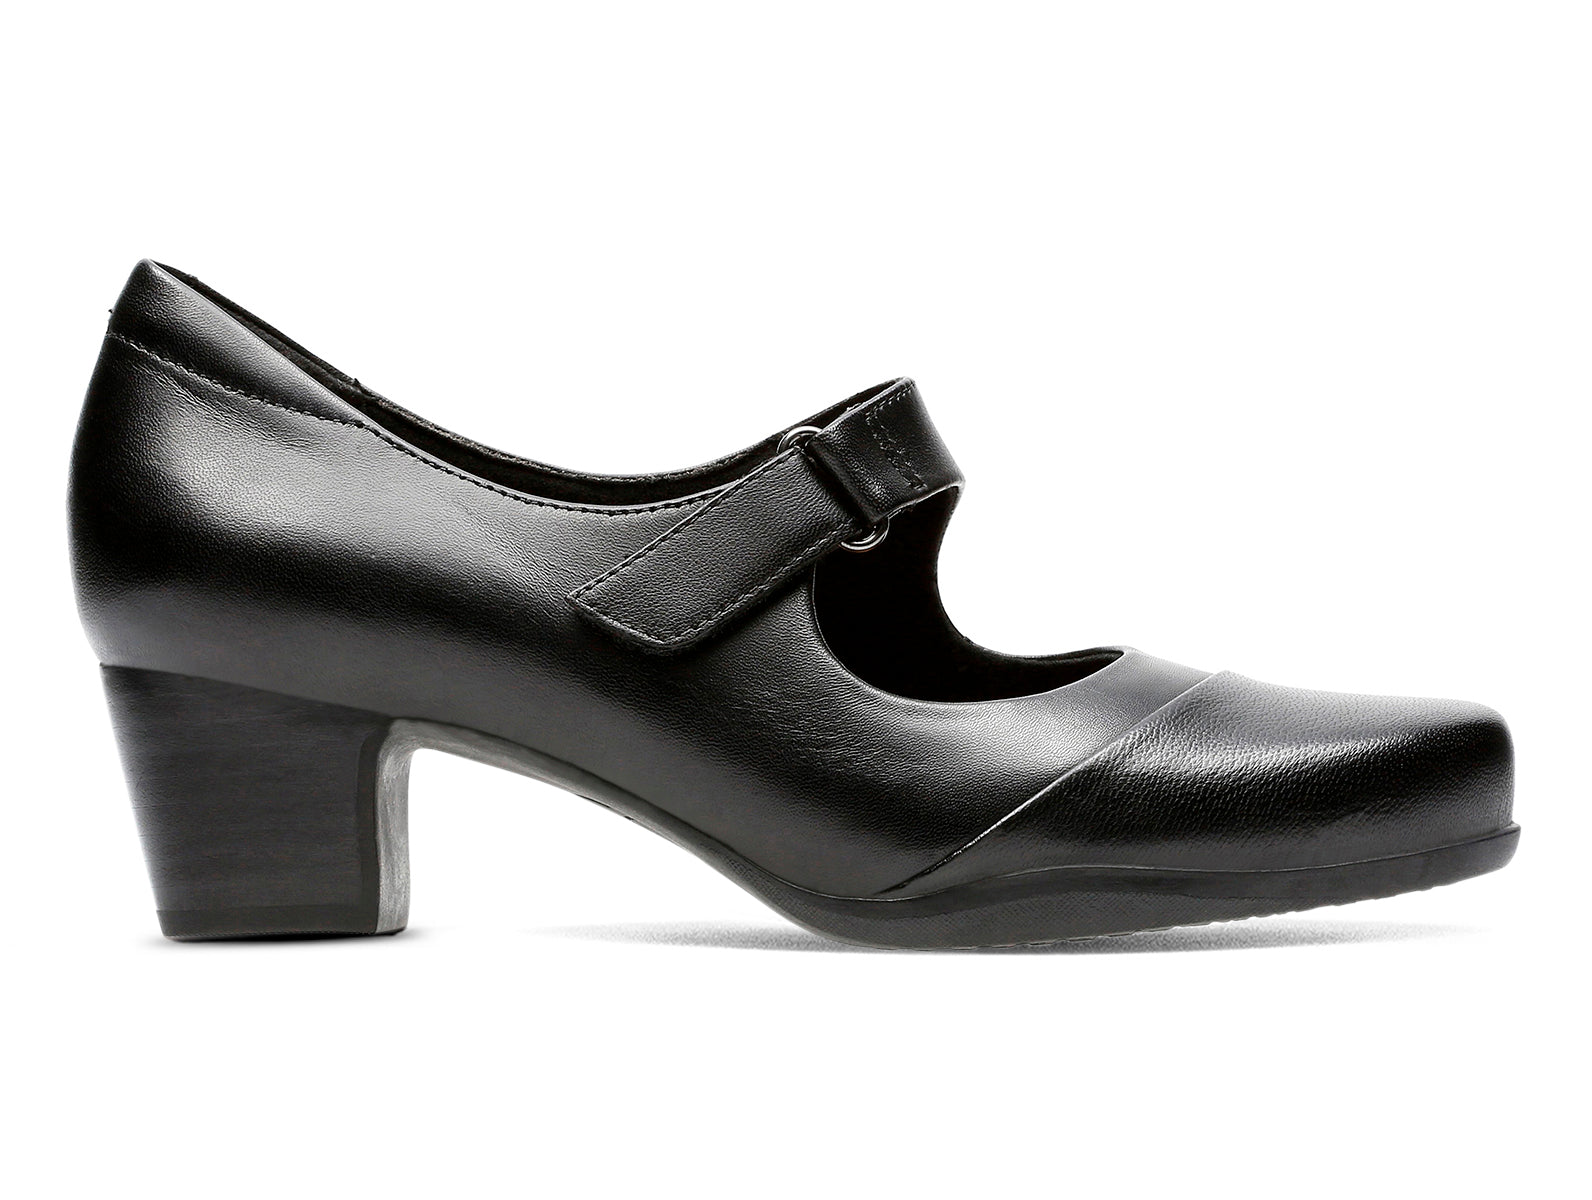 c1ab3387fc Clarks Rosalyn Wren   Mary Jane Pump   Black Leather – Walsh Brothers Shoes